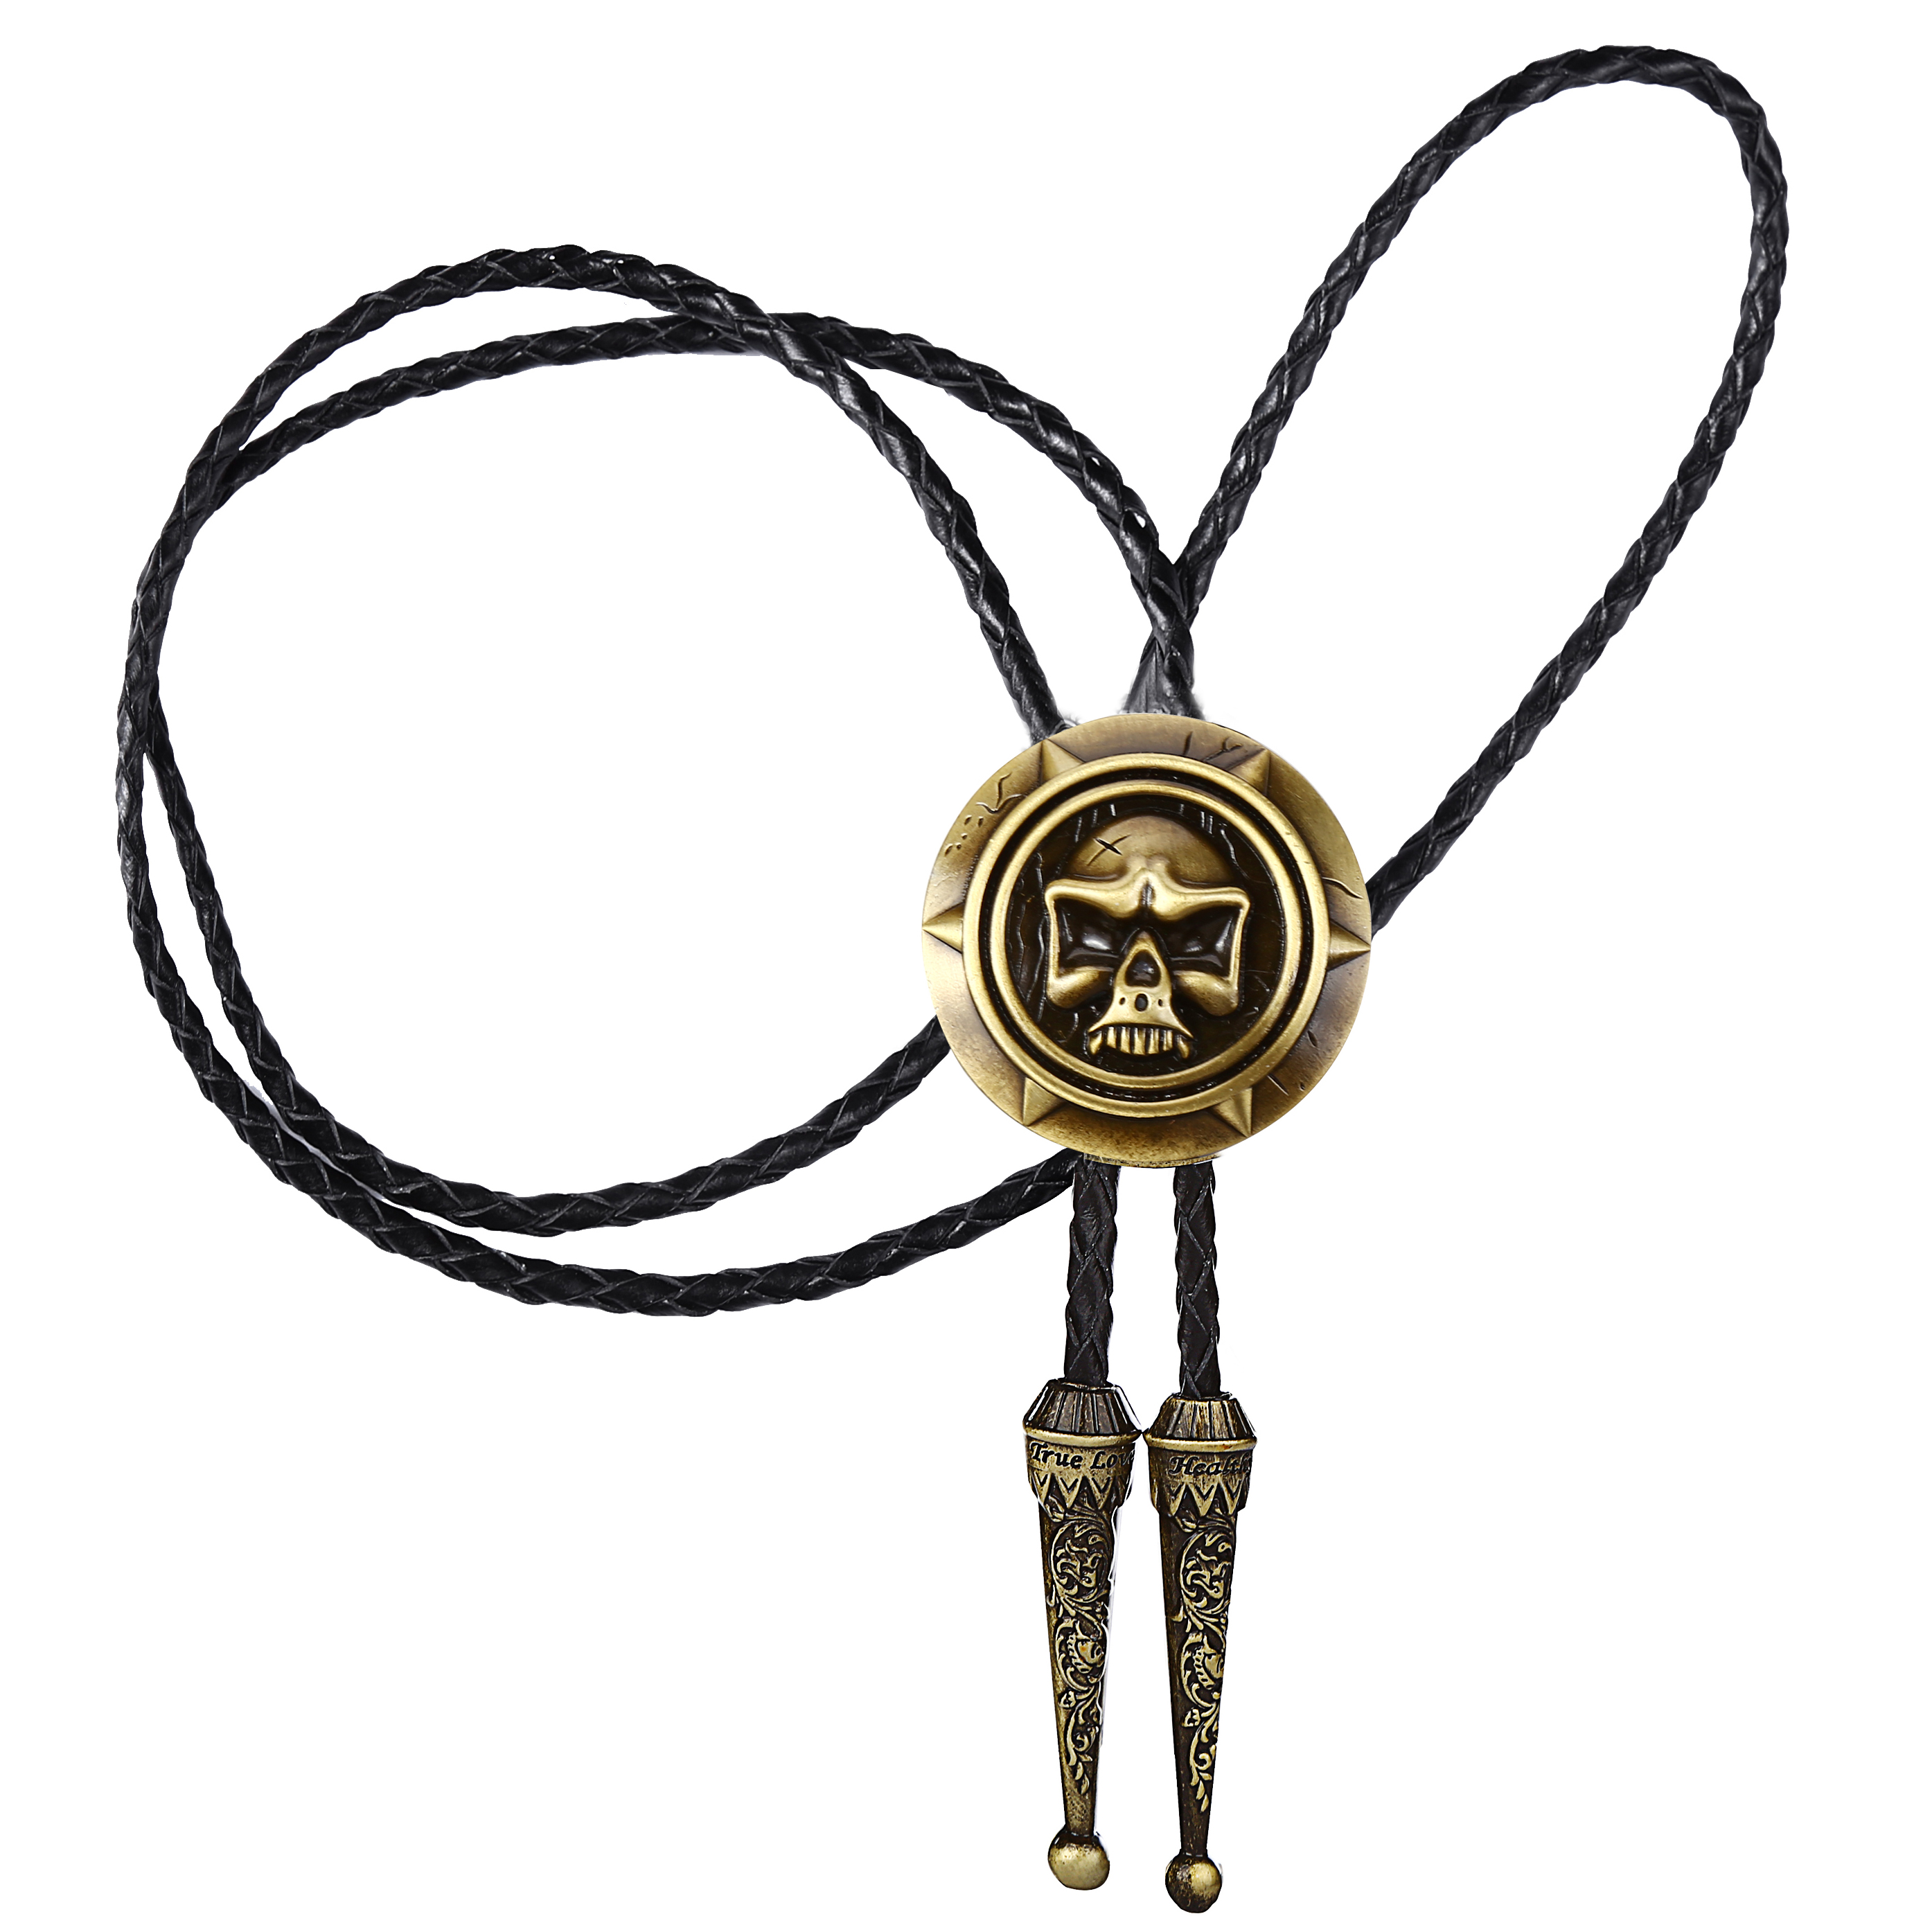 Man BOLO TIE Halloween Gift Leather Collar Rope Ghost Head Stylish Alloy TIE